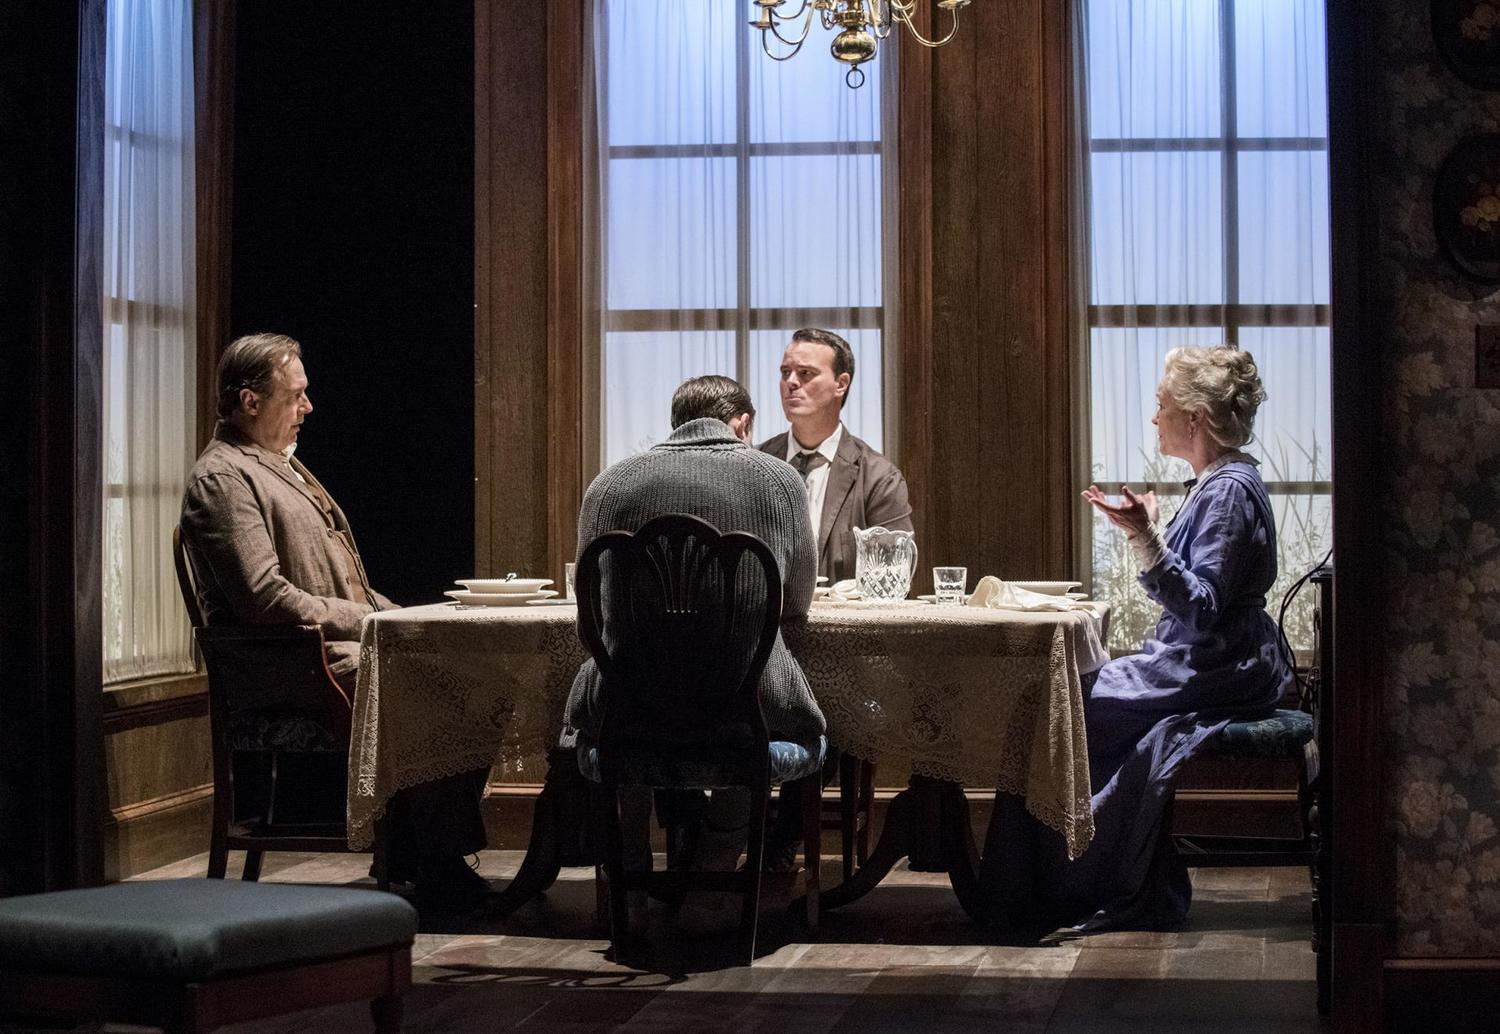 BWW Review: LONG DAY'S JOURNEY INTO NIGHT at Everyman Theatre